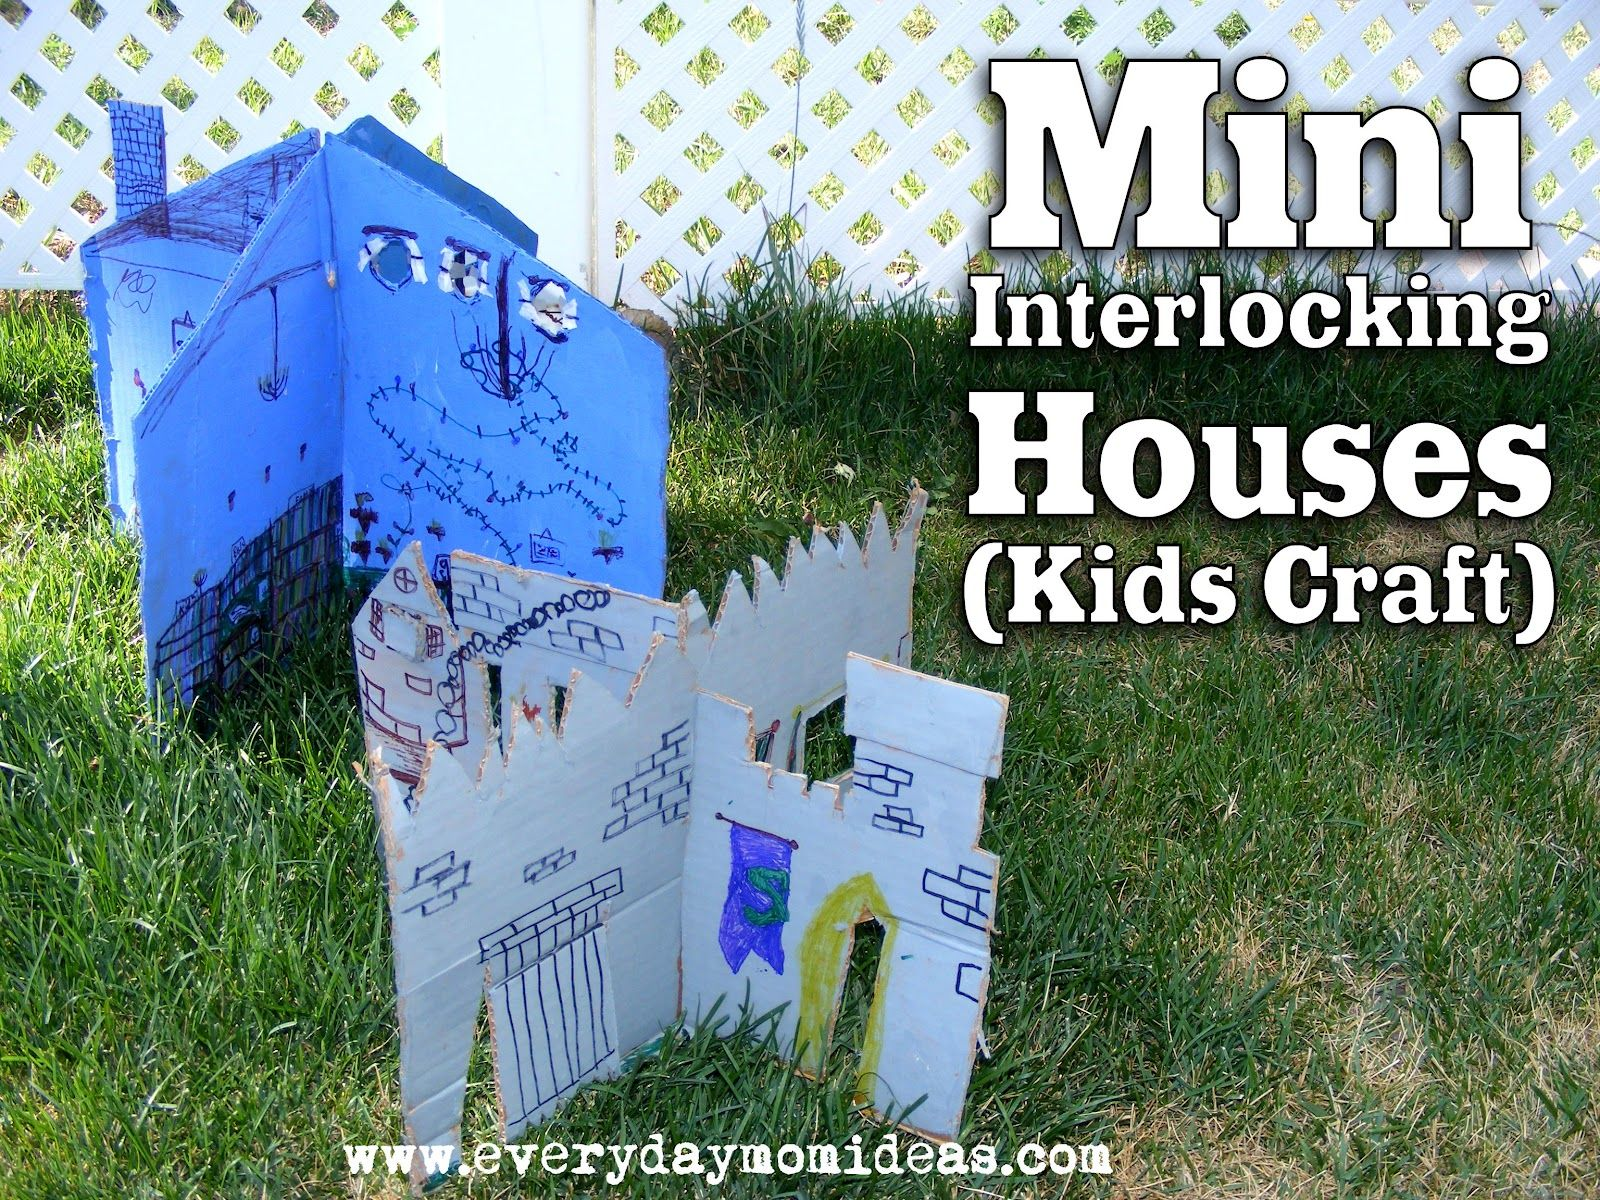 Mini interlocking houses.  Your kids will be occupied for hours!